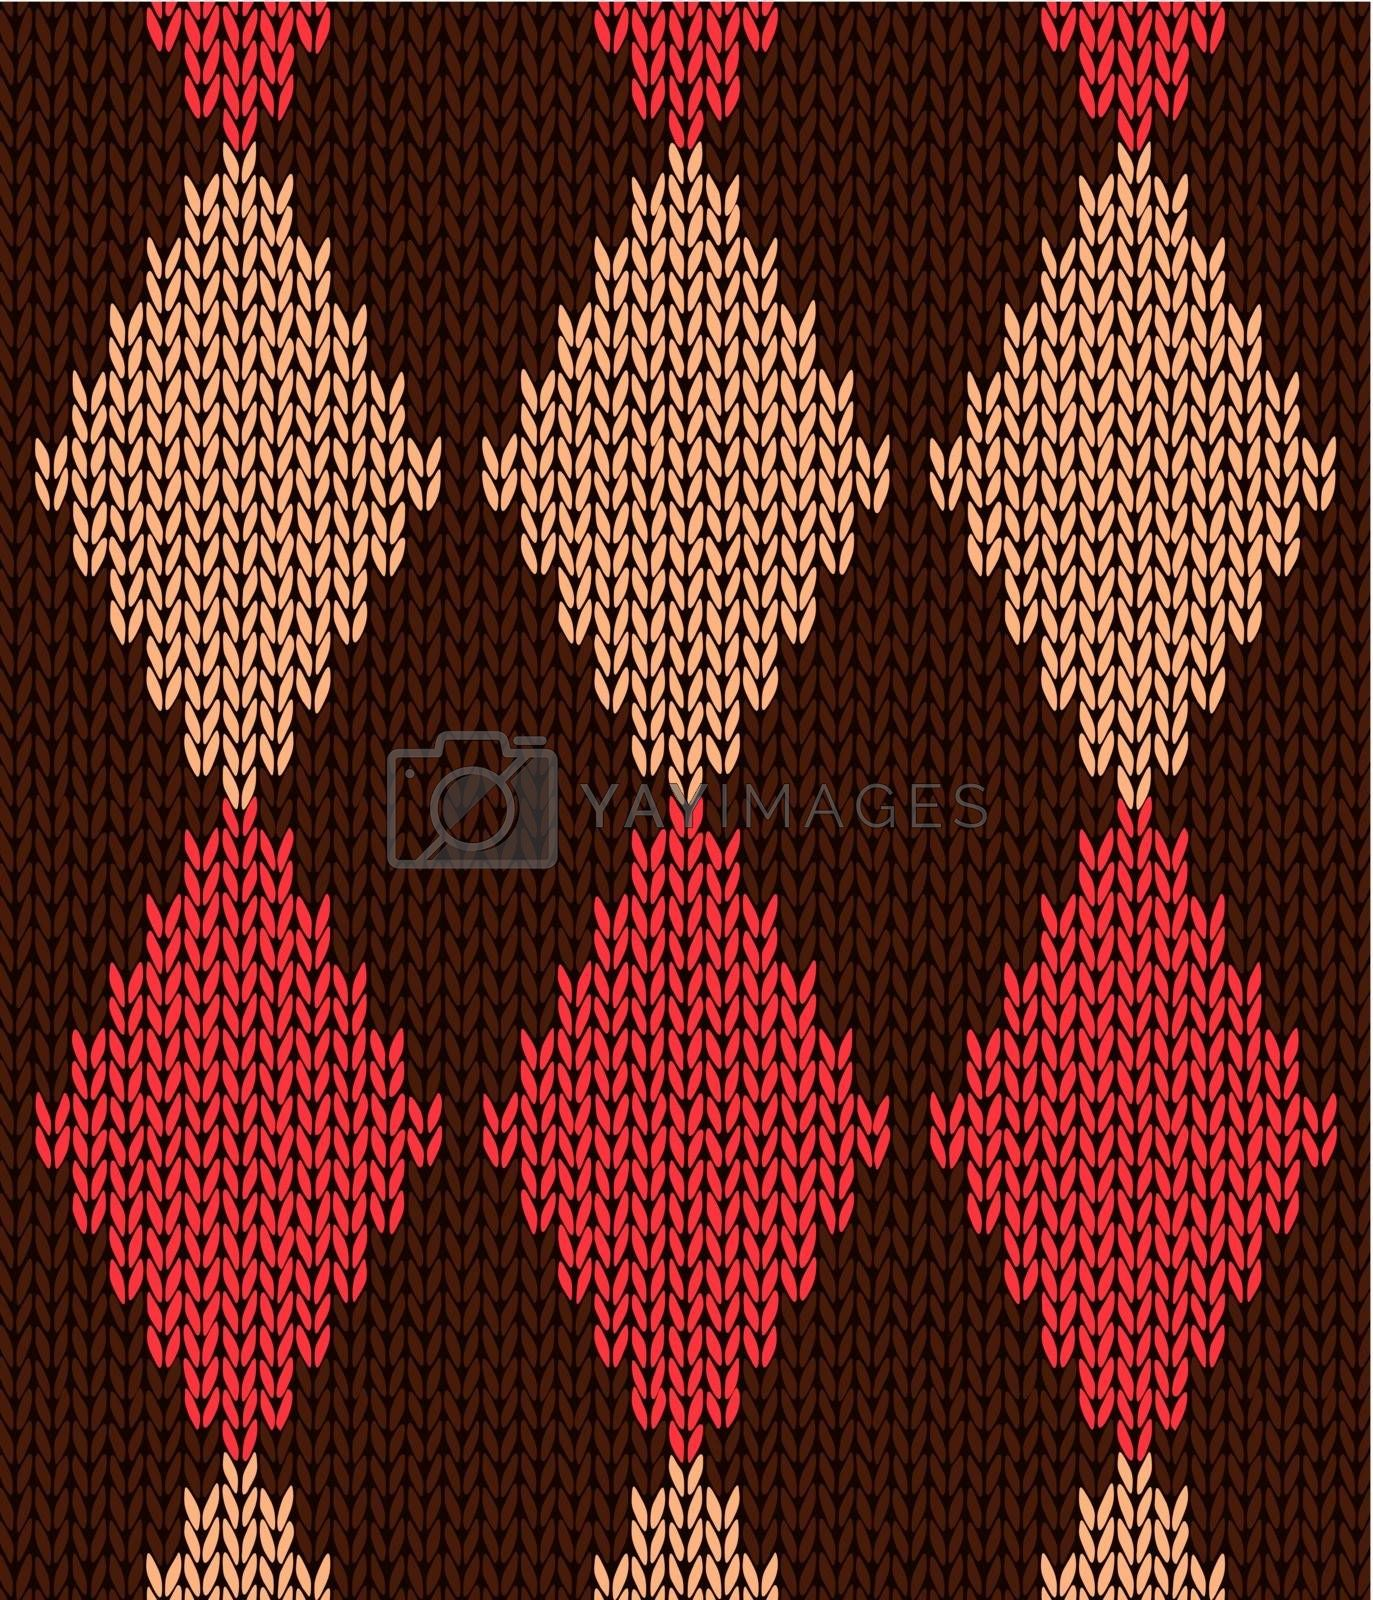 Style Seamless Knitted Pattern by ESSL